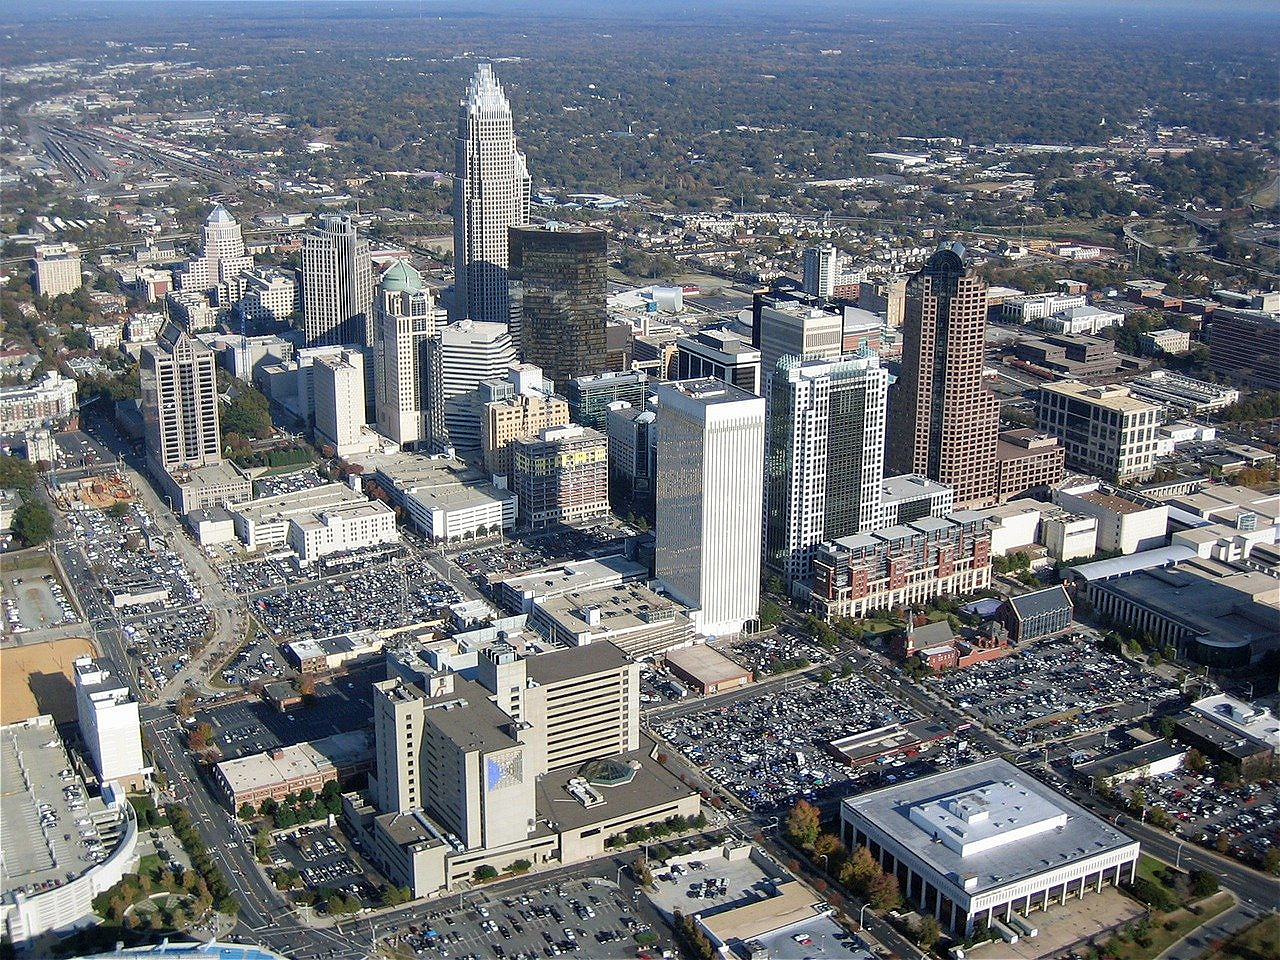 Skyline of charlotte nc where pallet removal services near me are offered.